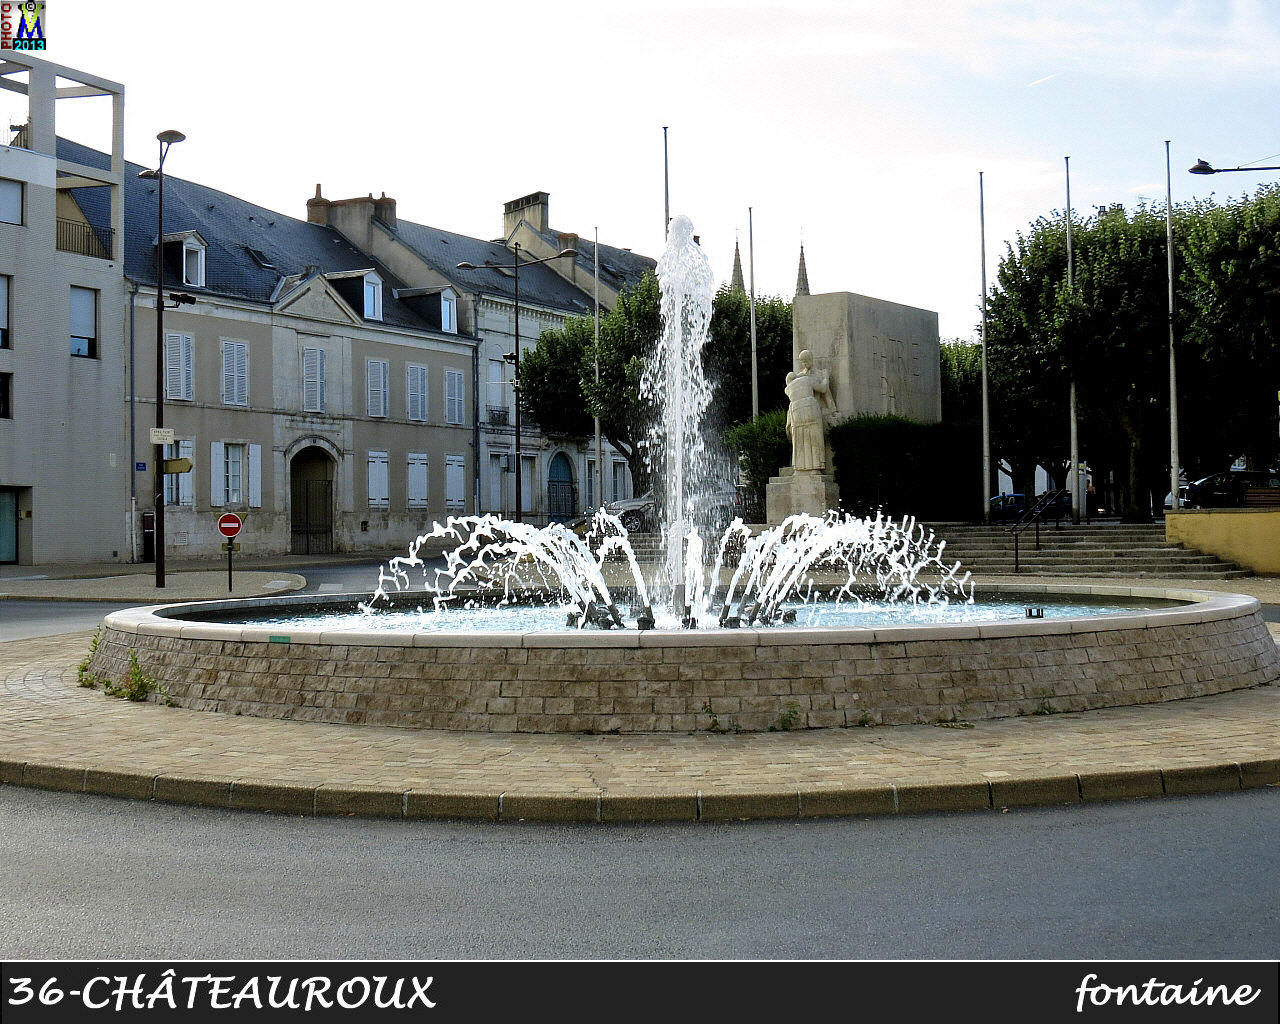 36CHATEAUROUX_fontaine_102.jpg